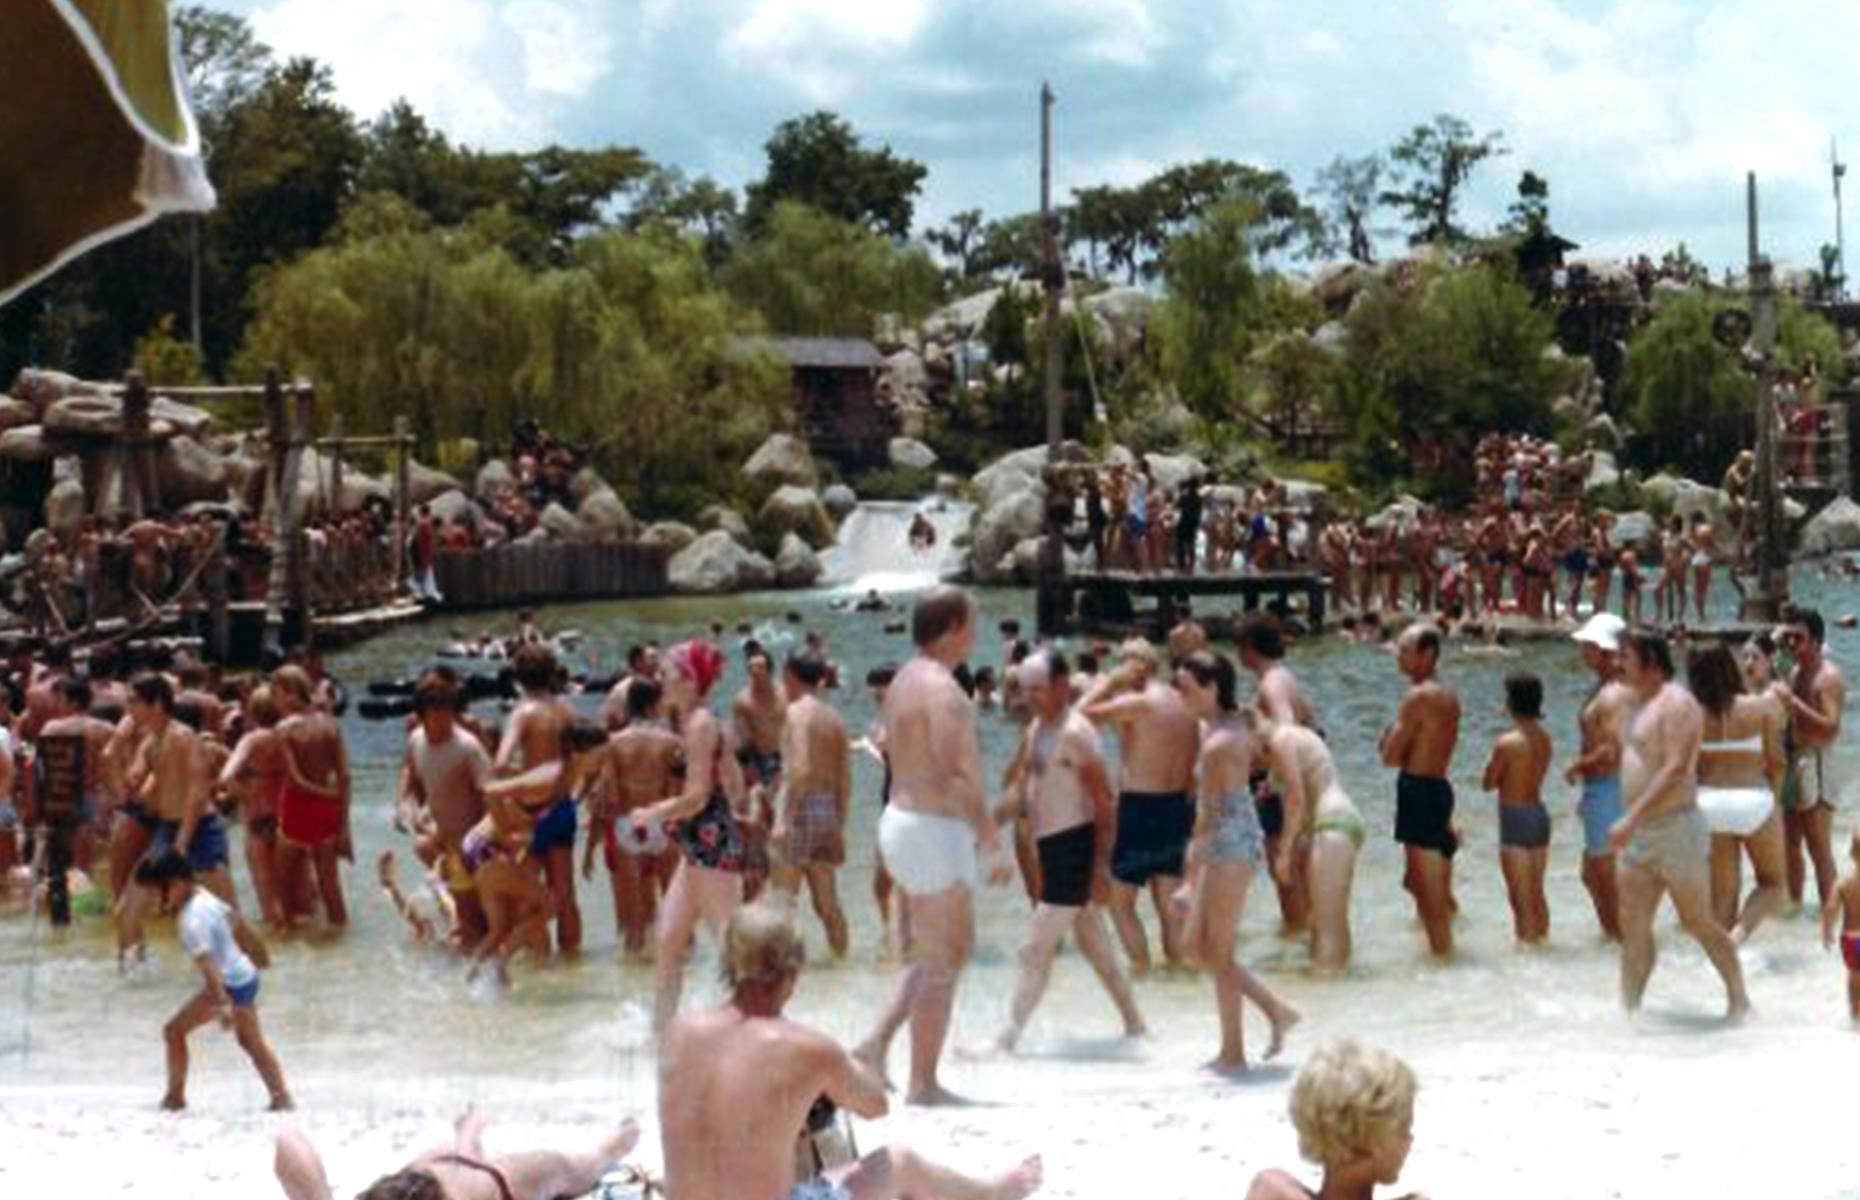 Slide 22 of 31: The creepy remains of Disney's River County still exist in Florida's Bay Lake (pictured here in 1977). Walt Disney World Resort's earliest water park opened in 1976, drawing visitors in their thousands with its slides rushing over rocks and its large swimming hole. The park was well-loved over the decades, but a handful of tragedies were linked to the site: two children died from drowning in the 1980s and another from a fatal amoebic infection contracted from the water.